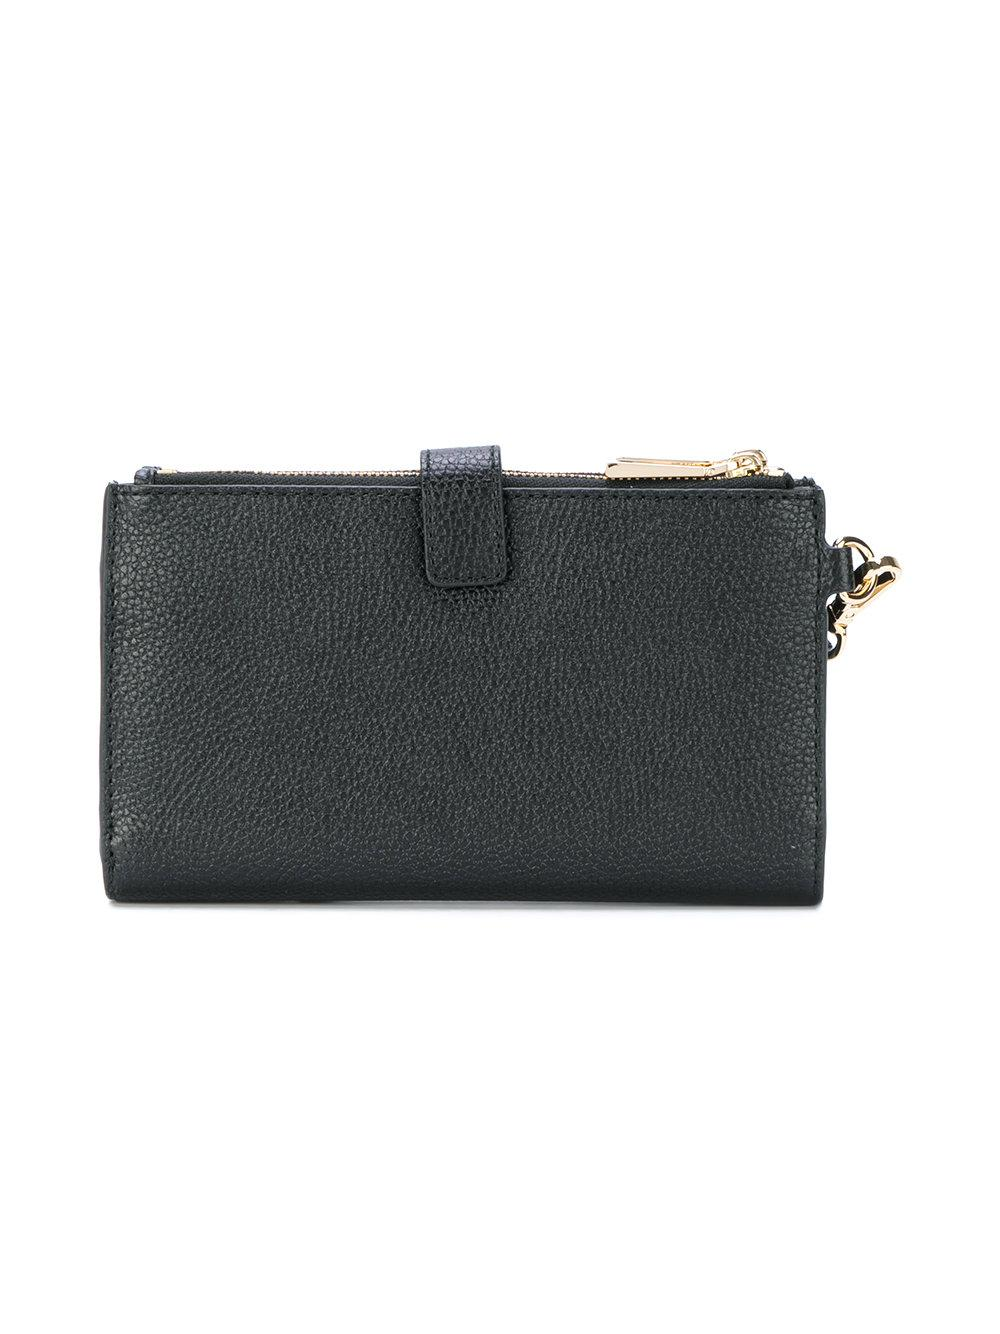 702806f92162b3 Lyst - MICHAEL Michael Kors Leather Pouch in Black - Save 8%